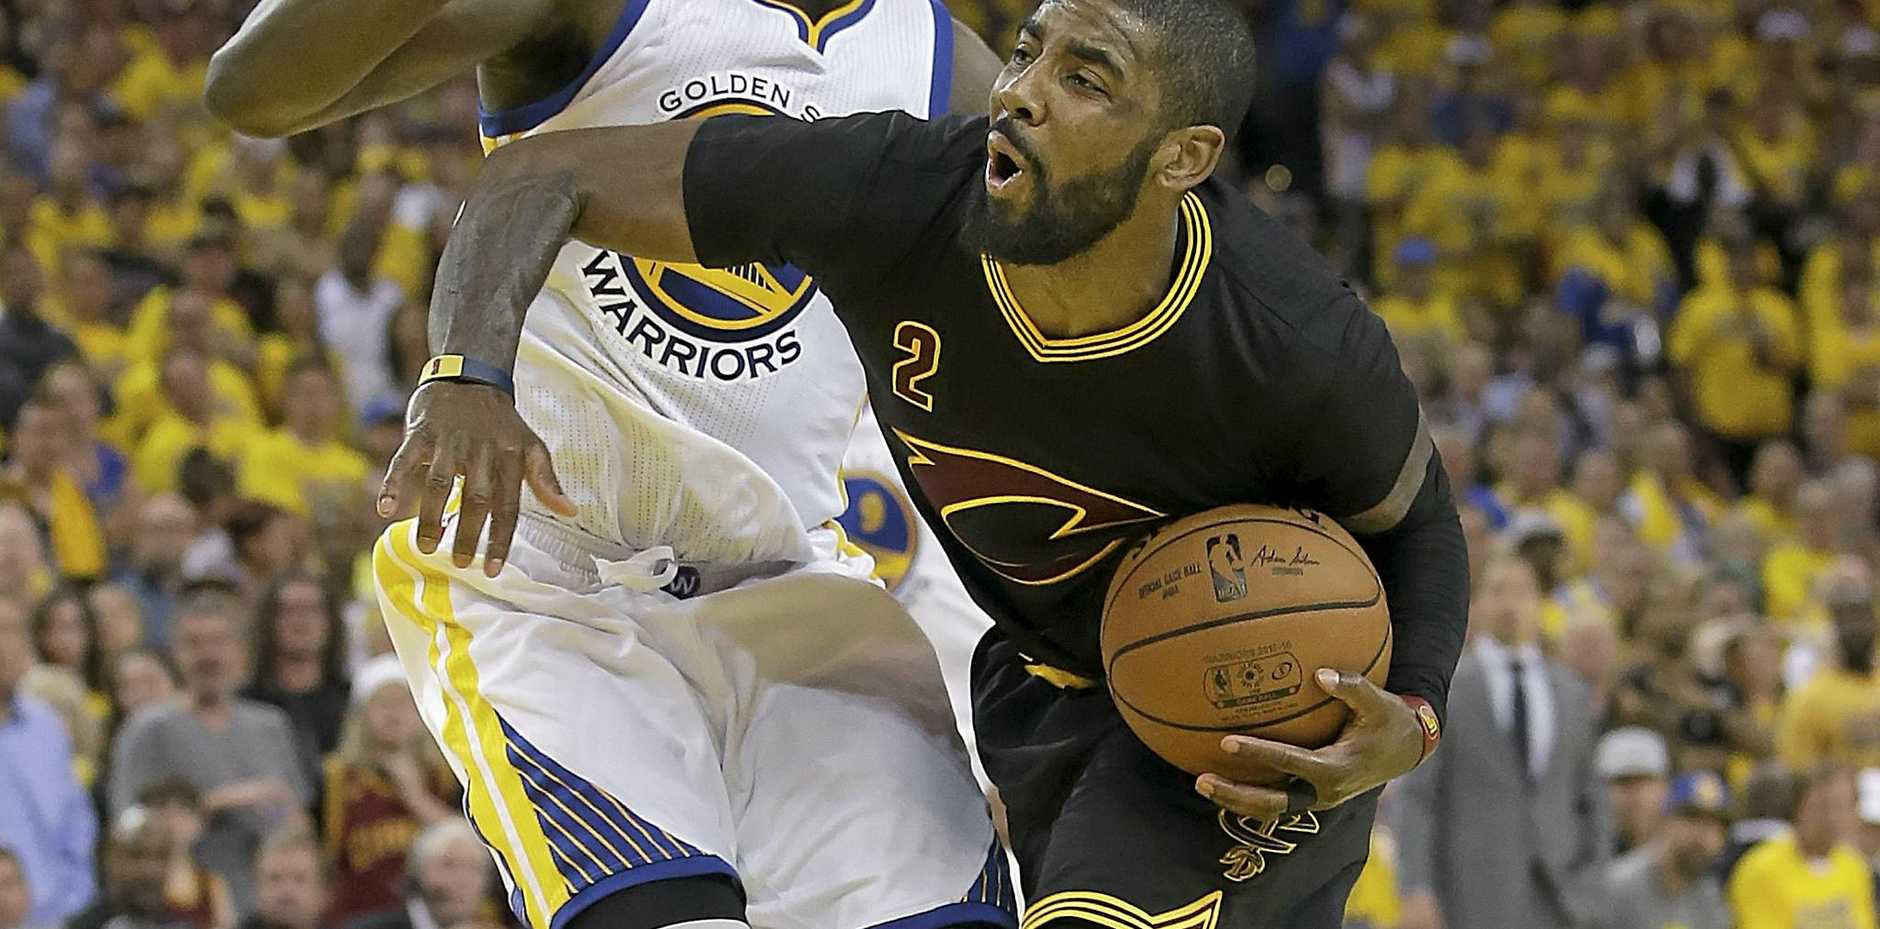 BRAZIL-BOUND: Cleveland Cavaliers guard Kyrie Irving (right) drives against Golden State Warriors forward Draymond Green.